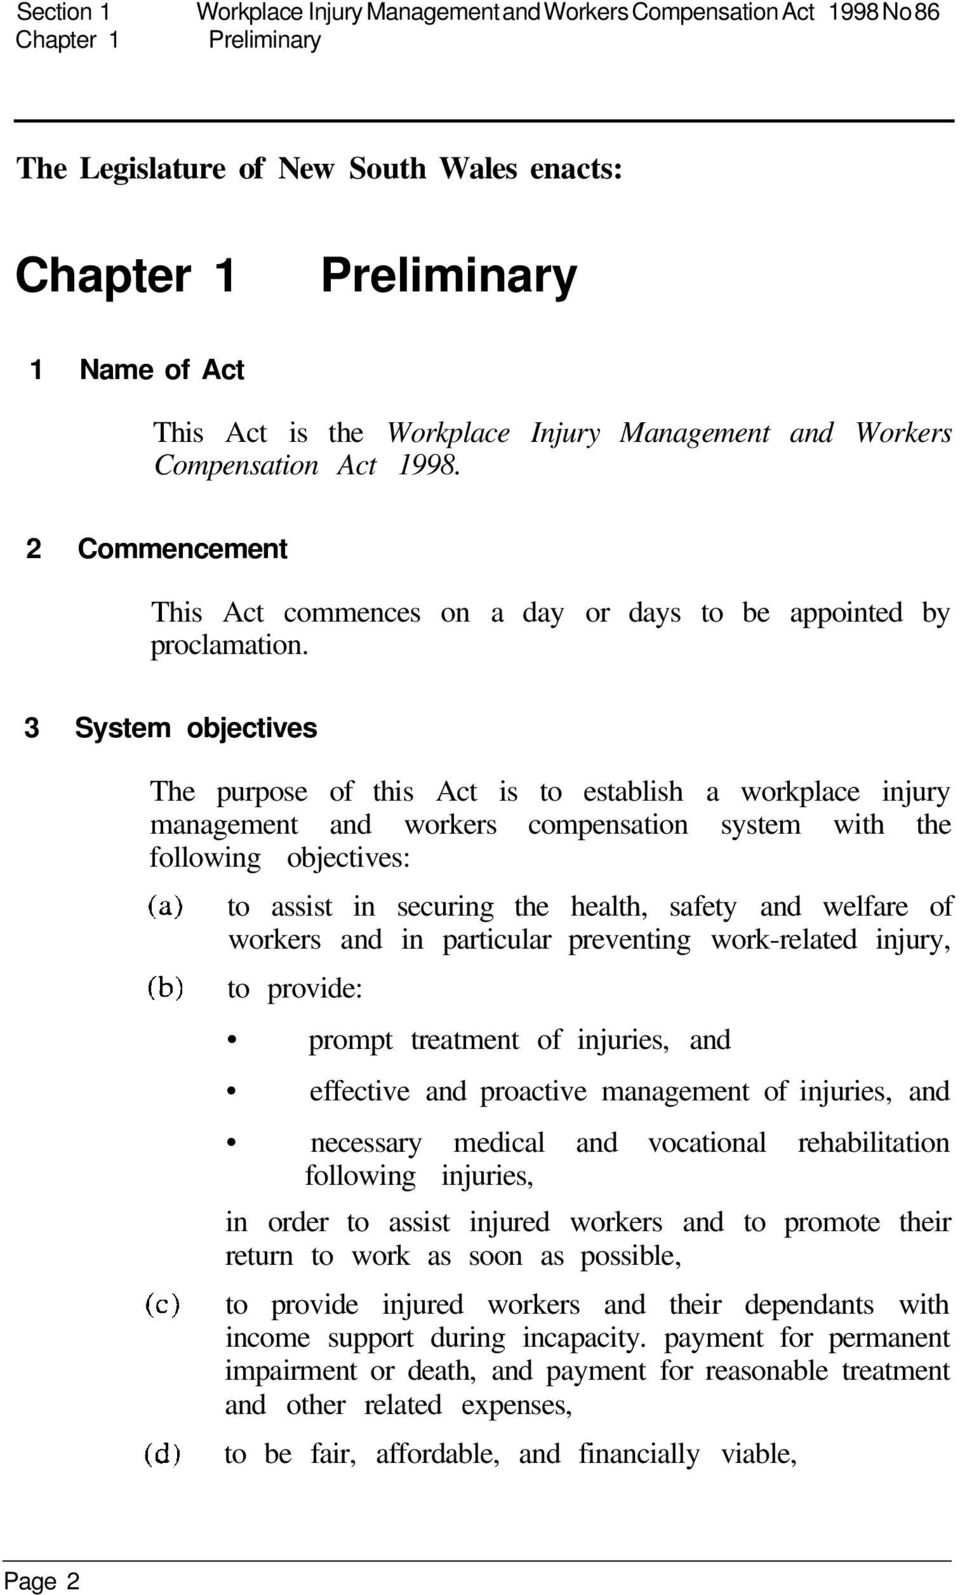 3 System objectives The purpose of this Act is to establish a workplace injury management and workers compensation system with the following objectives: to assist in securing the health, safety and